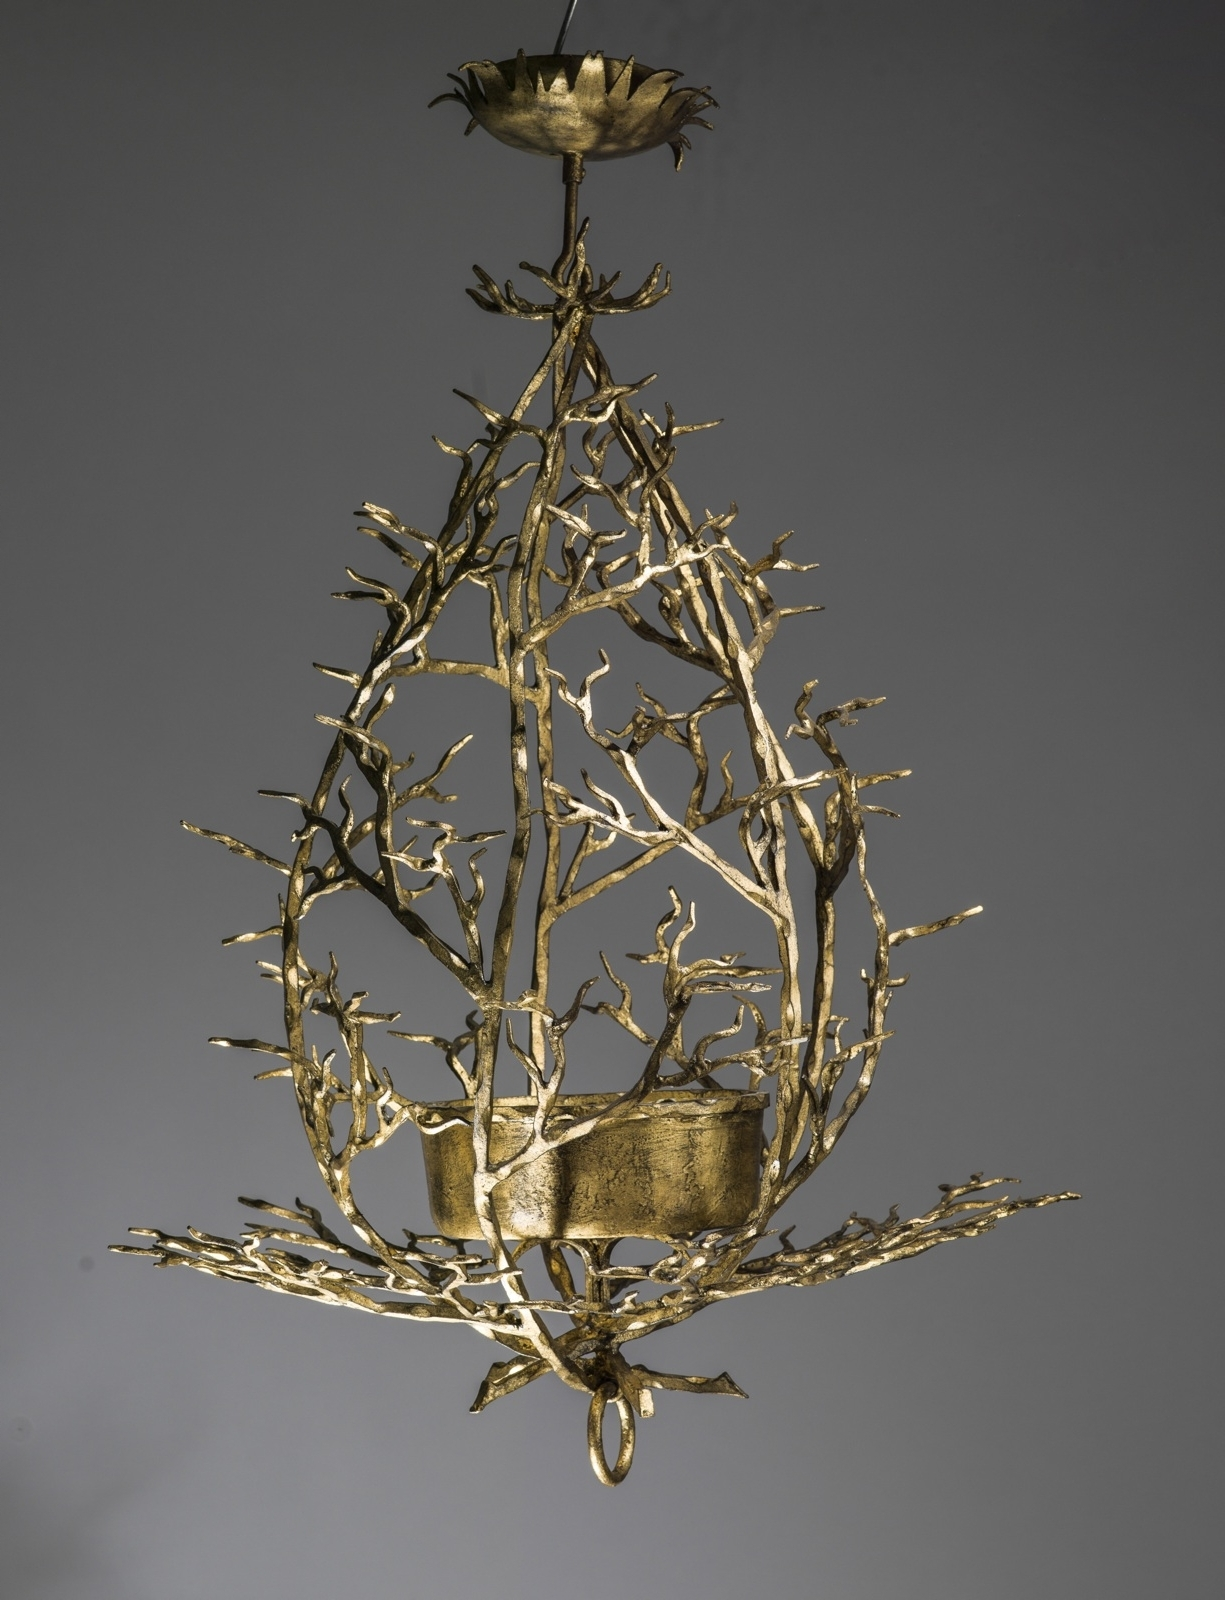 Small Wrought Iron 'twig' Chandelier In Warm Gold Leaf Finish (T3451 Regarding Fashionable Gold Leaf Chandelier (View 19 of 20)